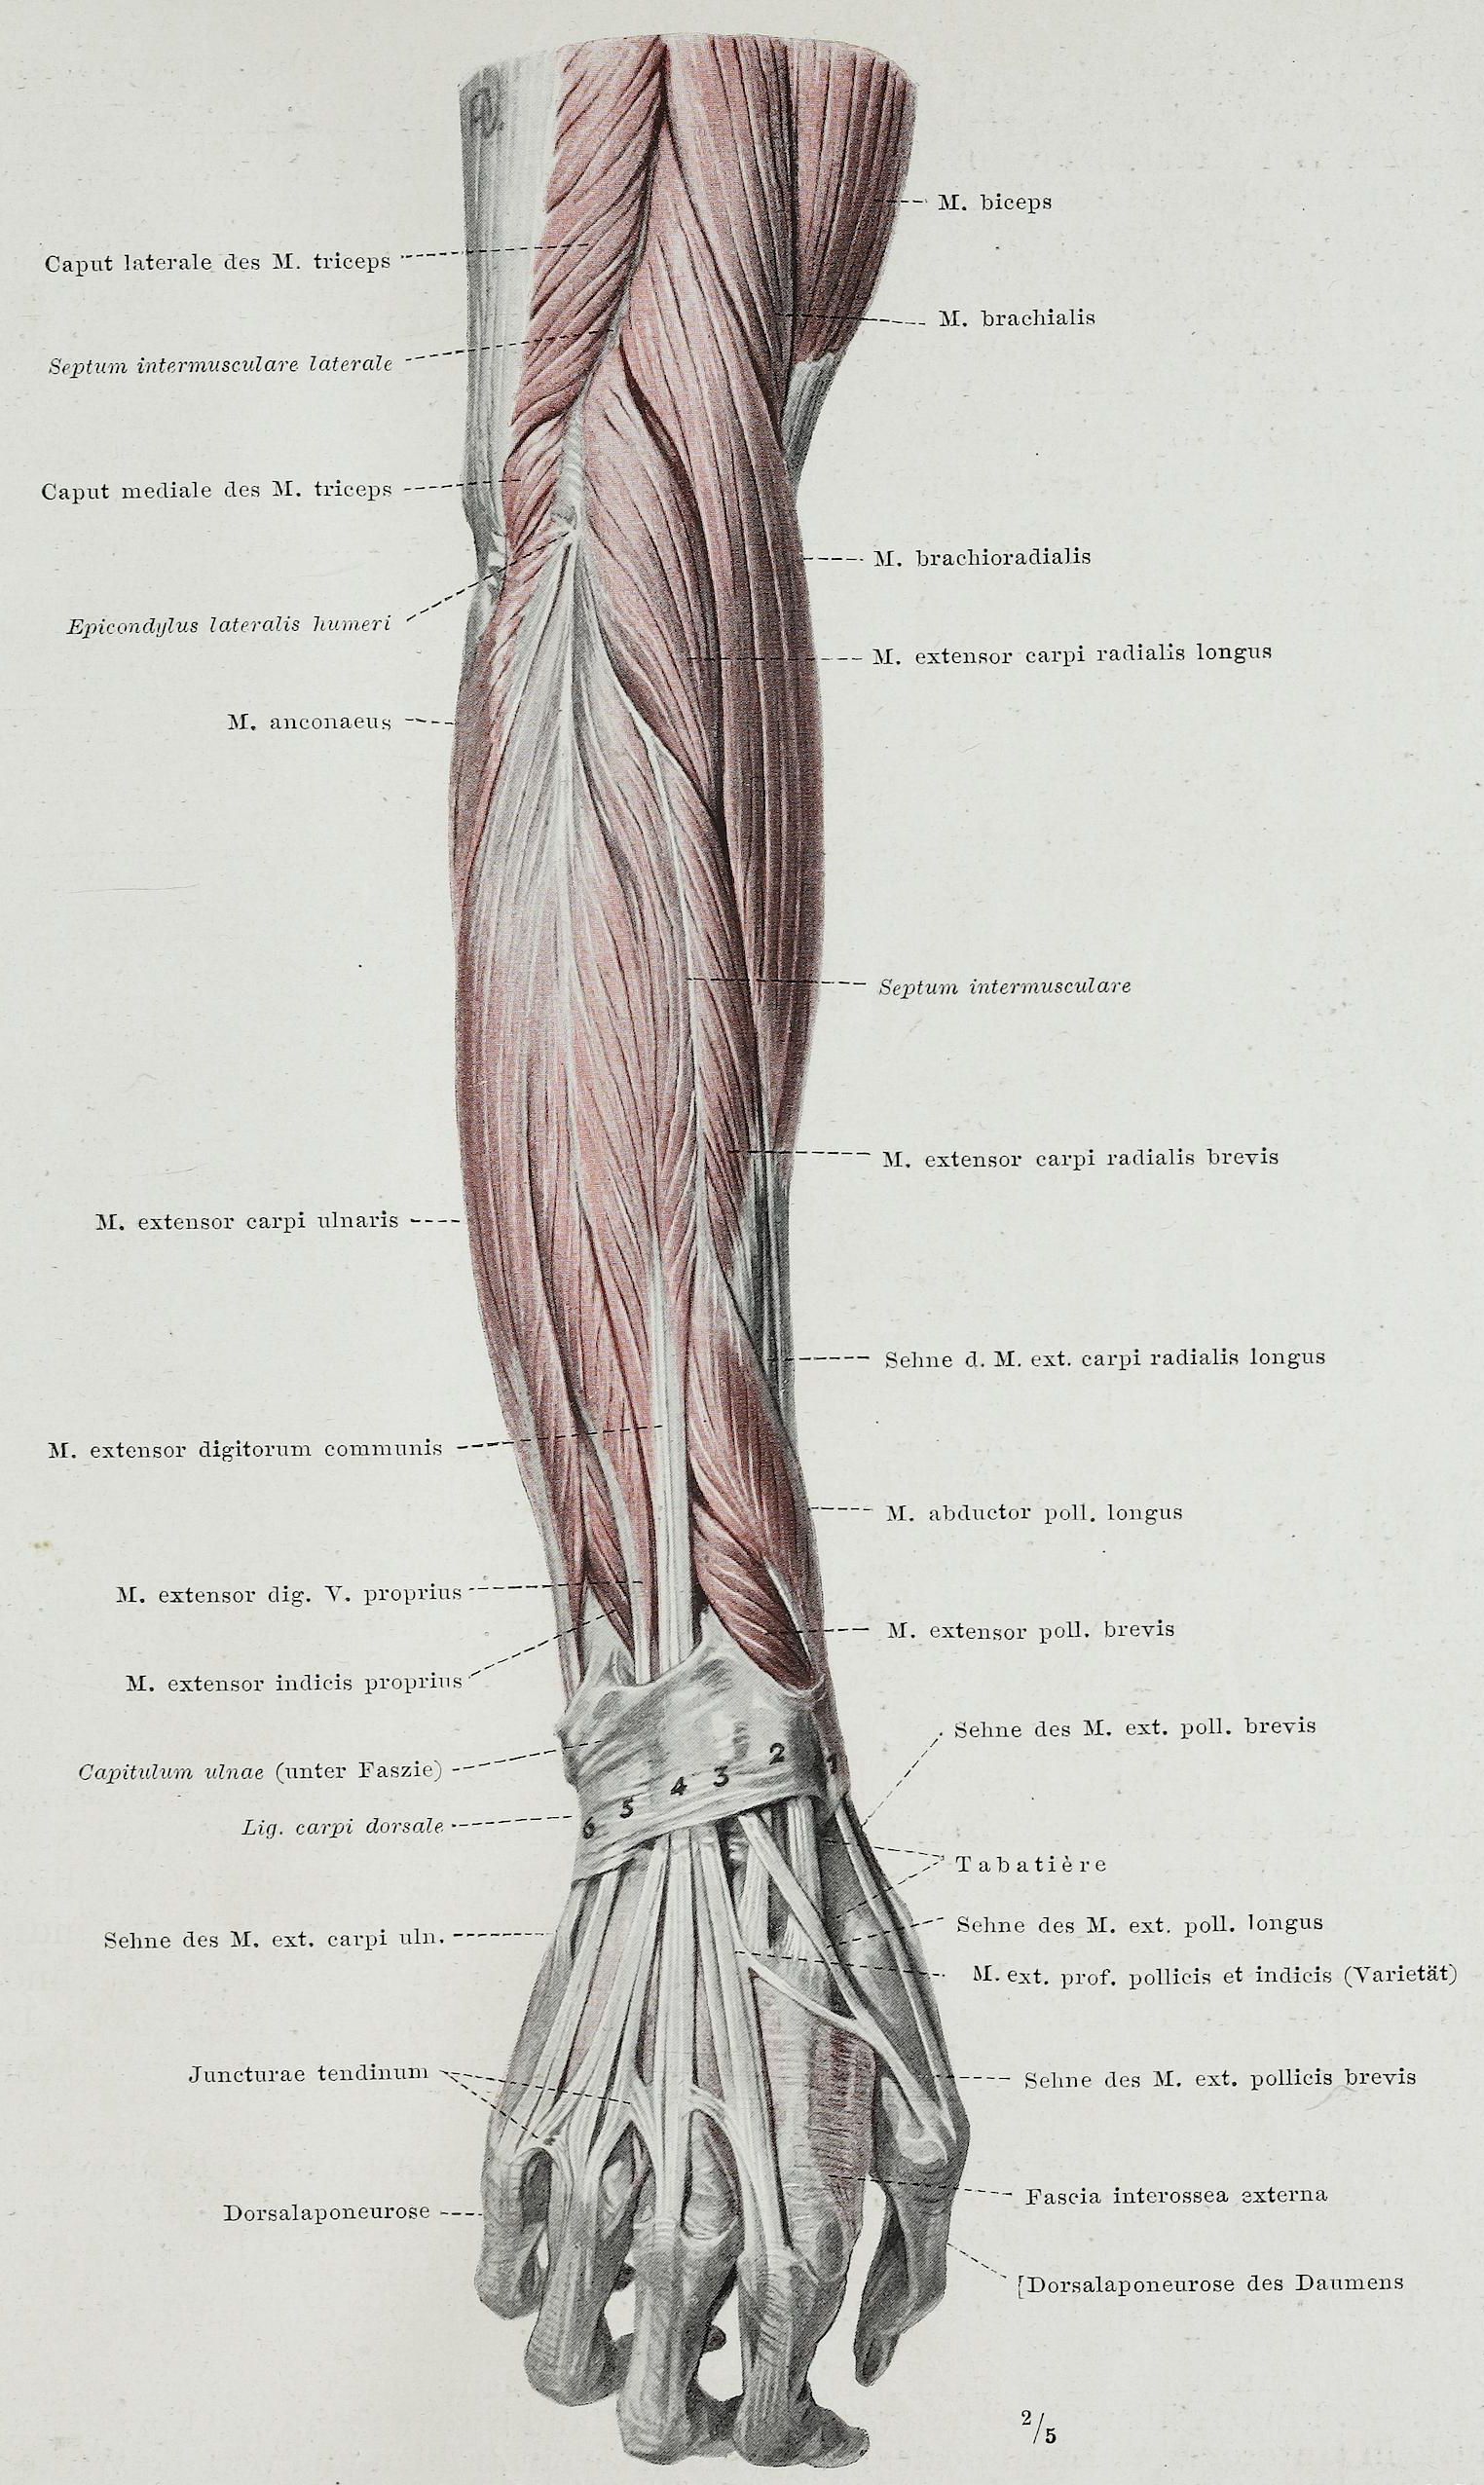 File:Braus 1921 182.png - Wikimedia Commons